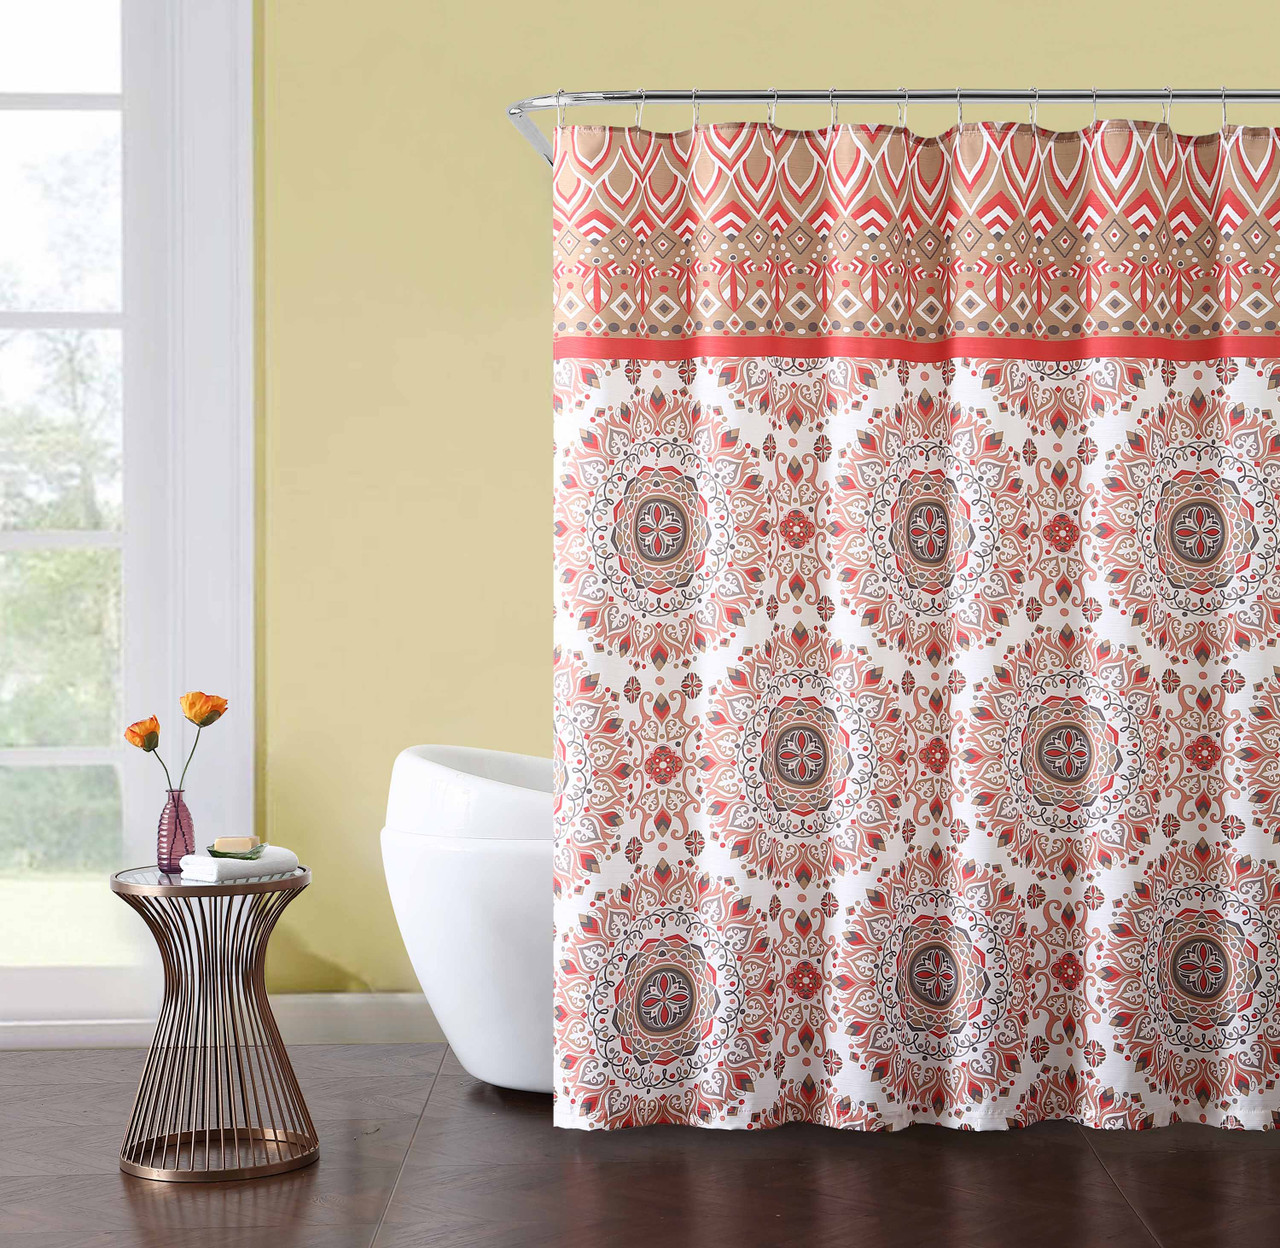 Fabric Shower Curtain White Coral Gray Red Medallion Design Includes Set Of Roller Ball Hooks 72in X72 In